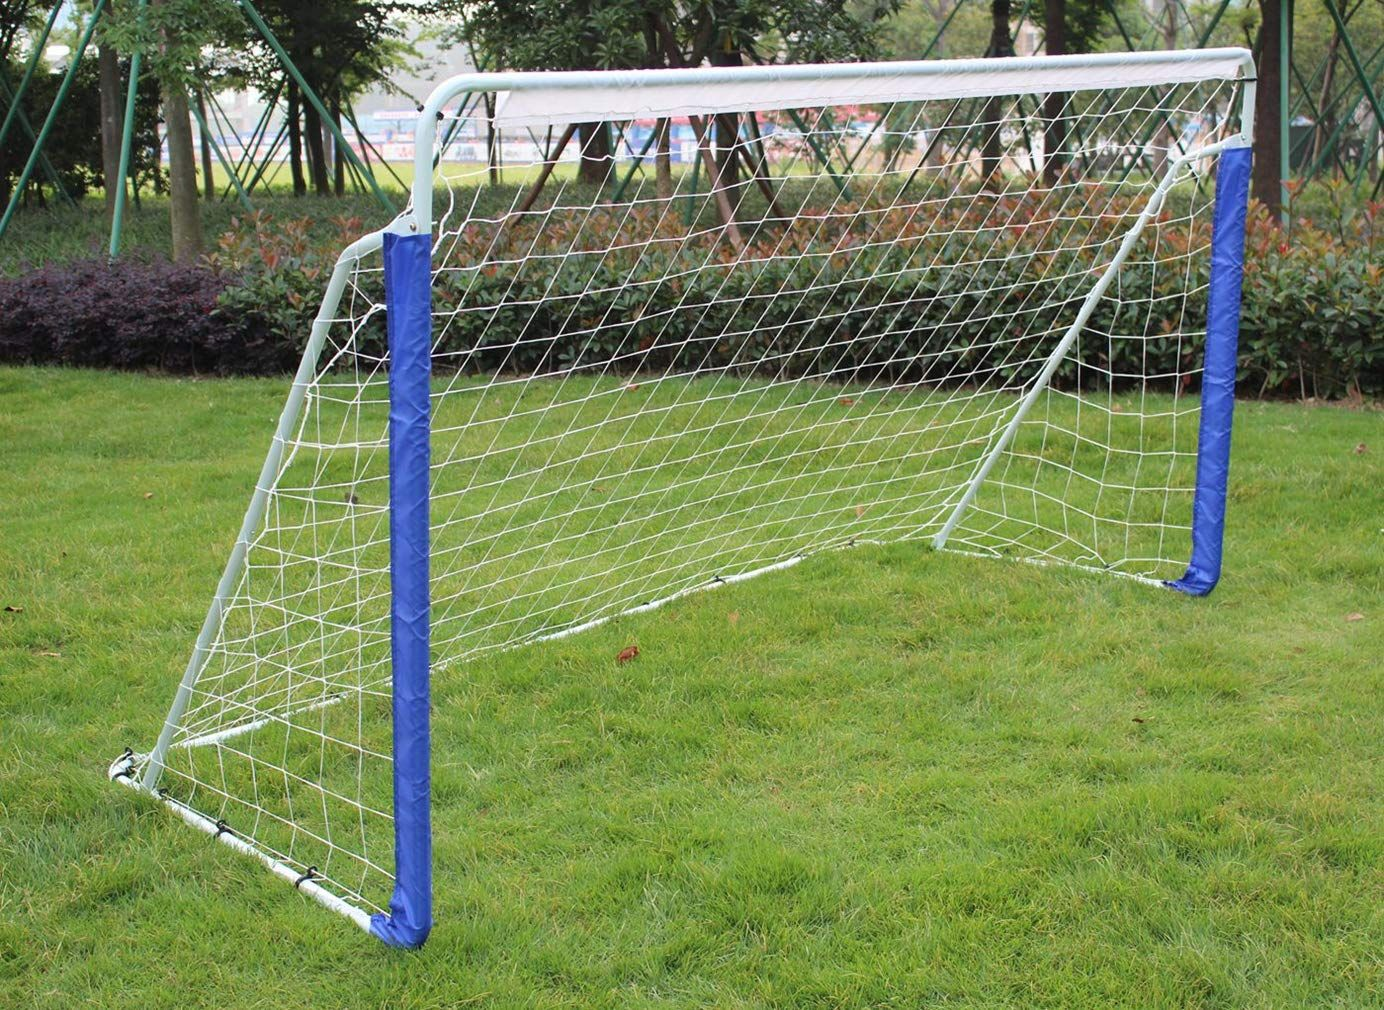 Klb Sport 8 X 5 Portable Steel Soccer Goal With Net And Carry Bag To View Further For This Item Visit The Image Link This Is An Soccer Goal Soccer Goals